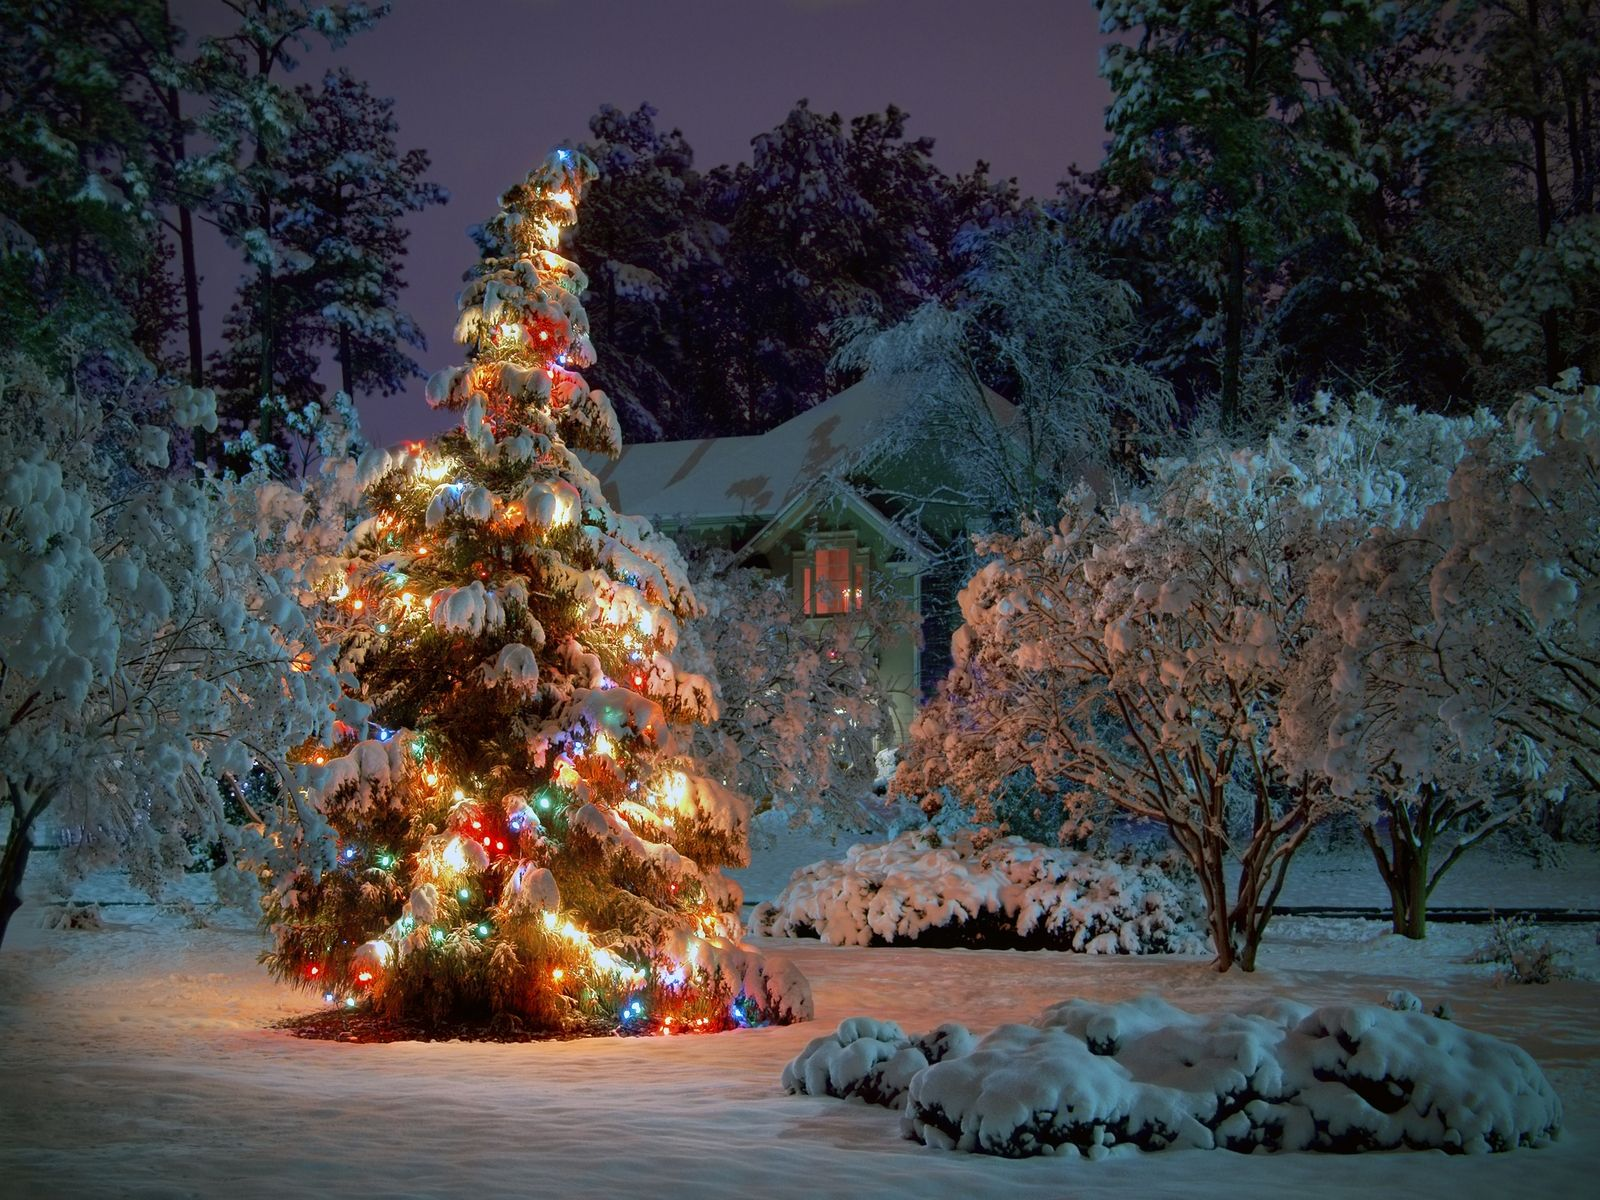 Outdoor Christmas Tree Christmas Tree Wallpaper Outdoor Christmas Tree Beautiful Christmas Trees Decorated